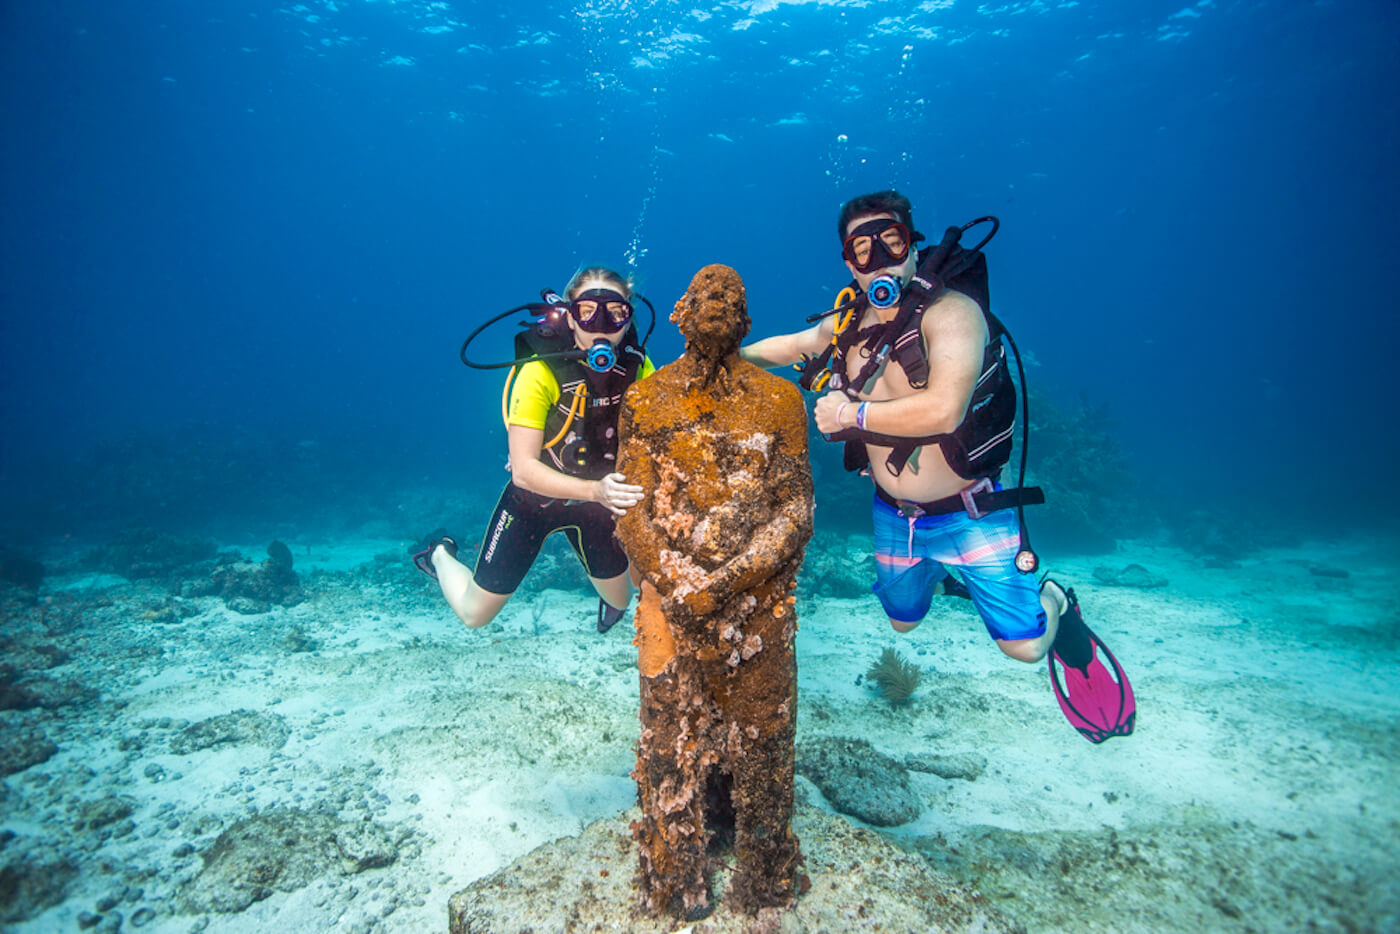 MUSA-Underwater-Museum-Cancun-Dive-Center-Caribbean-Connections-9